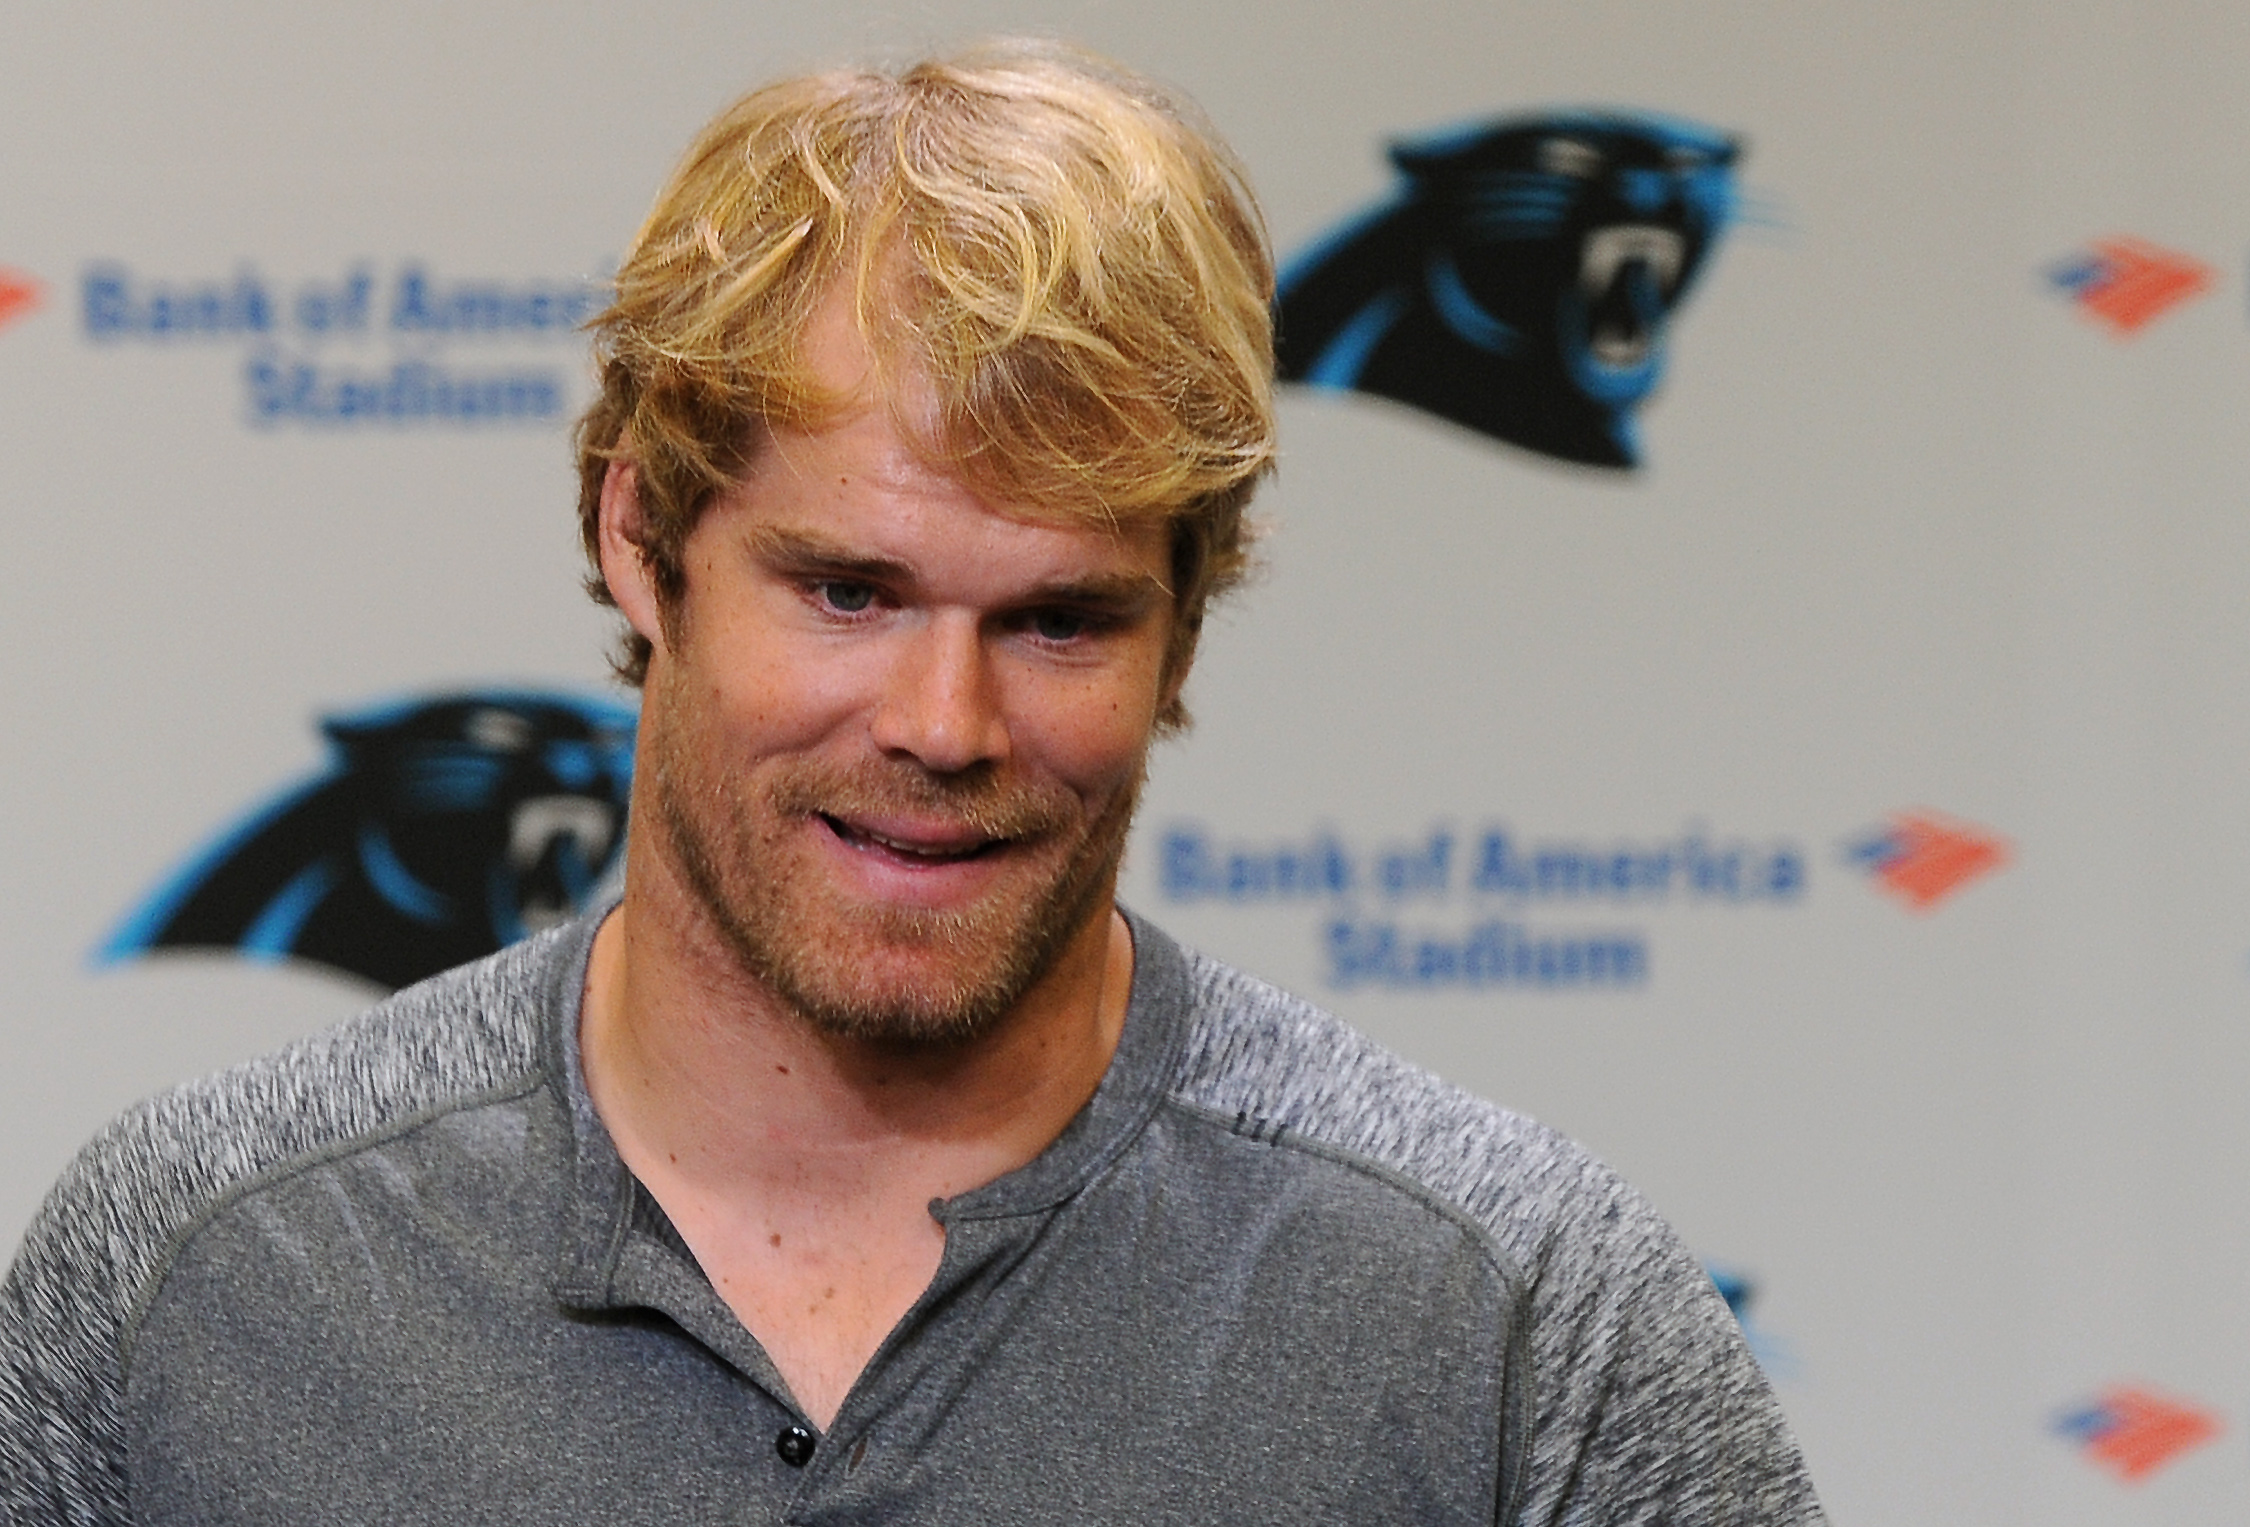 Carolina Panthers NFL football tight end Greg Olsen listens to a reporter's question during a player availability session at Bank of America Stadium on Monday, April 25, 2016.  (Jeff Siner/The Charlotte Observer via AP) MAGS OUT; TV OUT; MANDATORY CREDIT